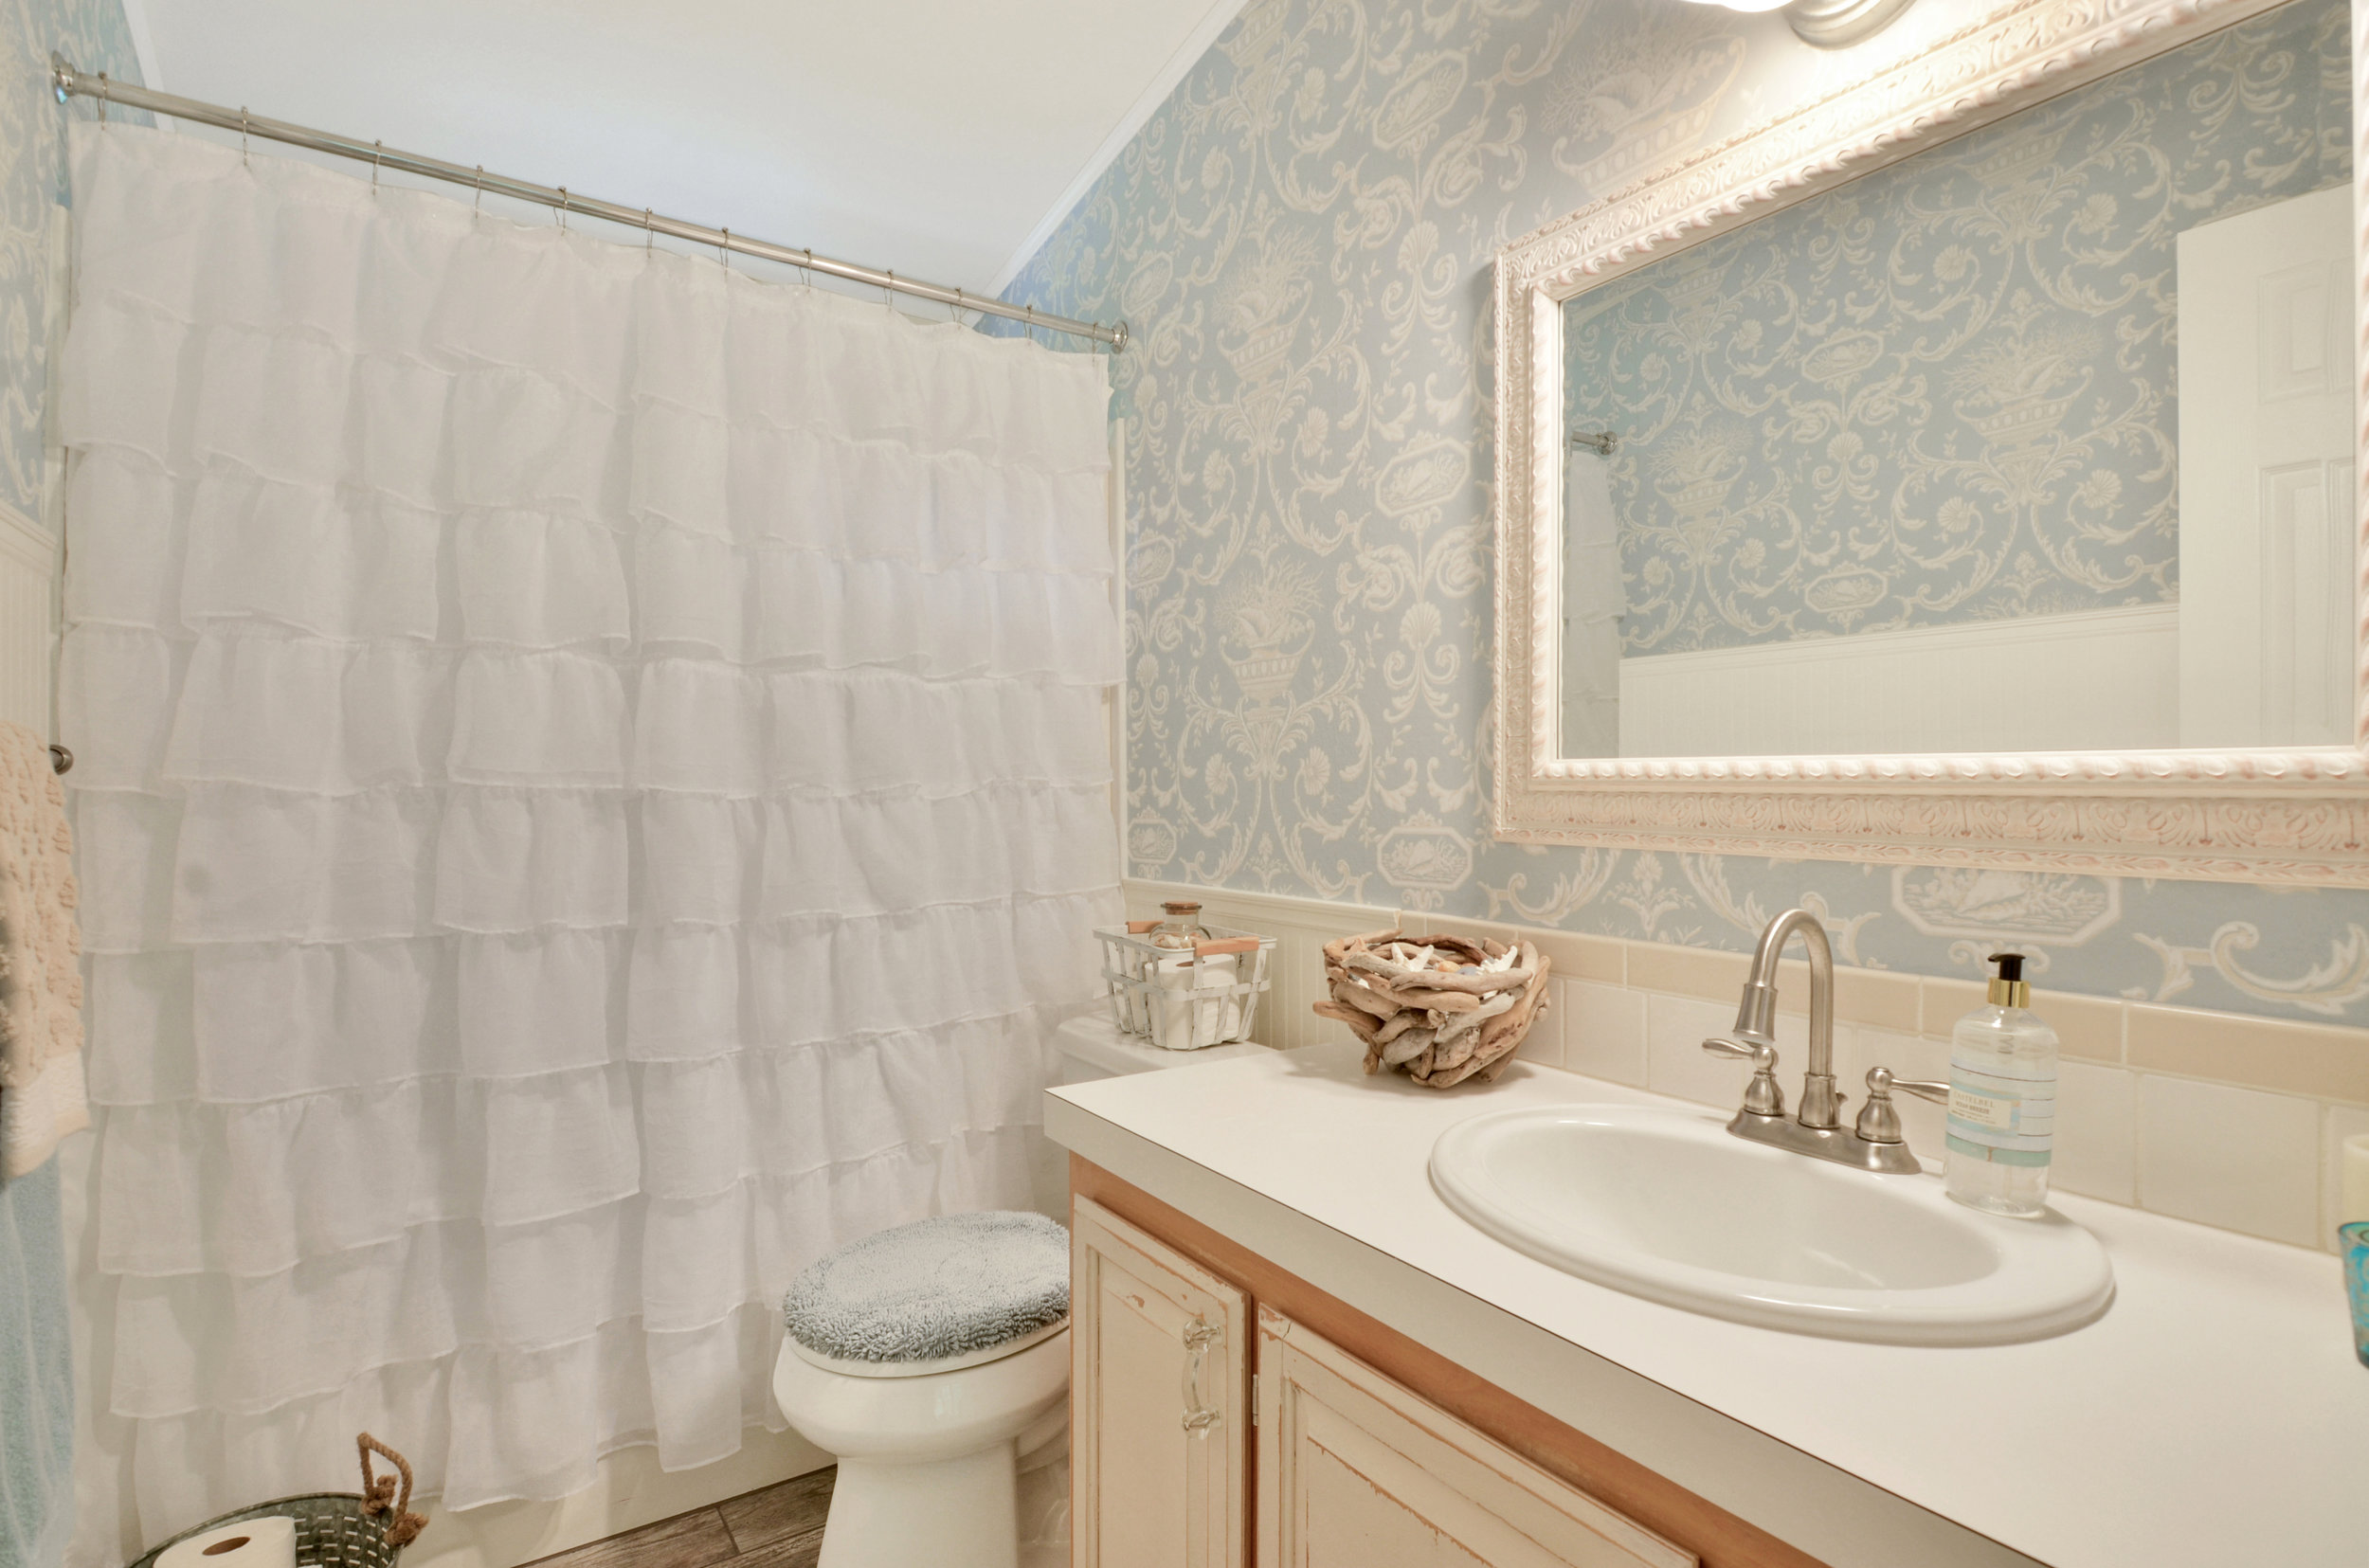 The 2nd full bath in the home is located off the family room between the 2 additional bedrooms. With a shower/bath combination, a spacious vanity, tasteful tile backsplash, and pretty design, this room is ready to go.